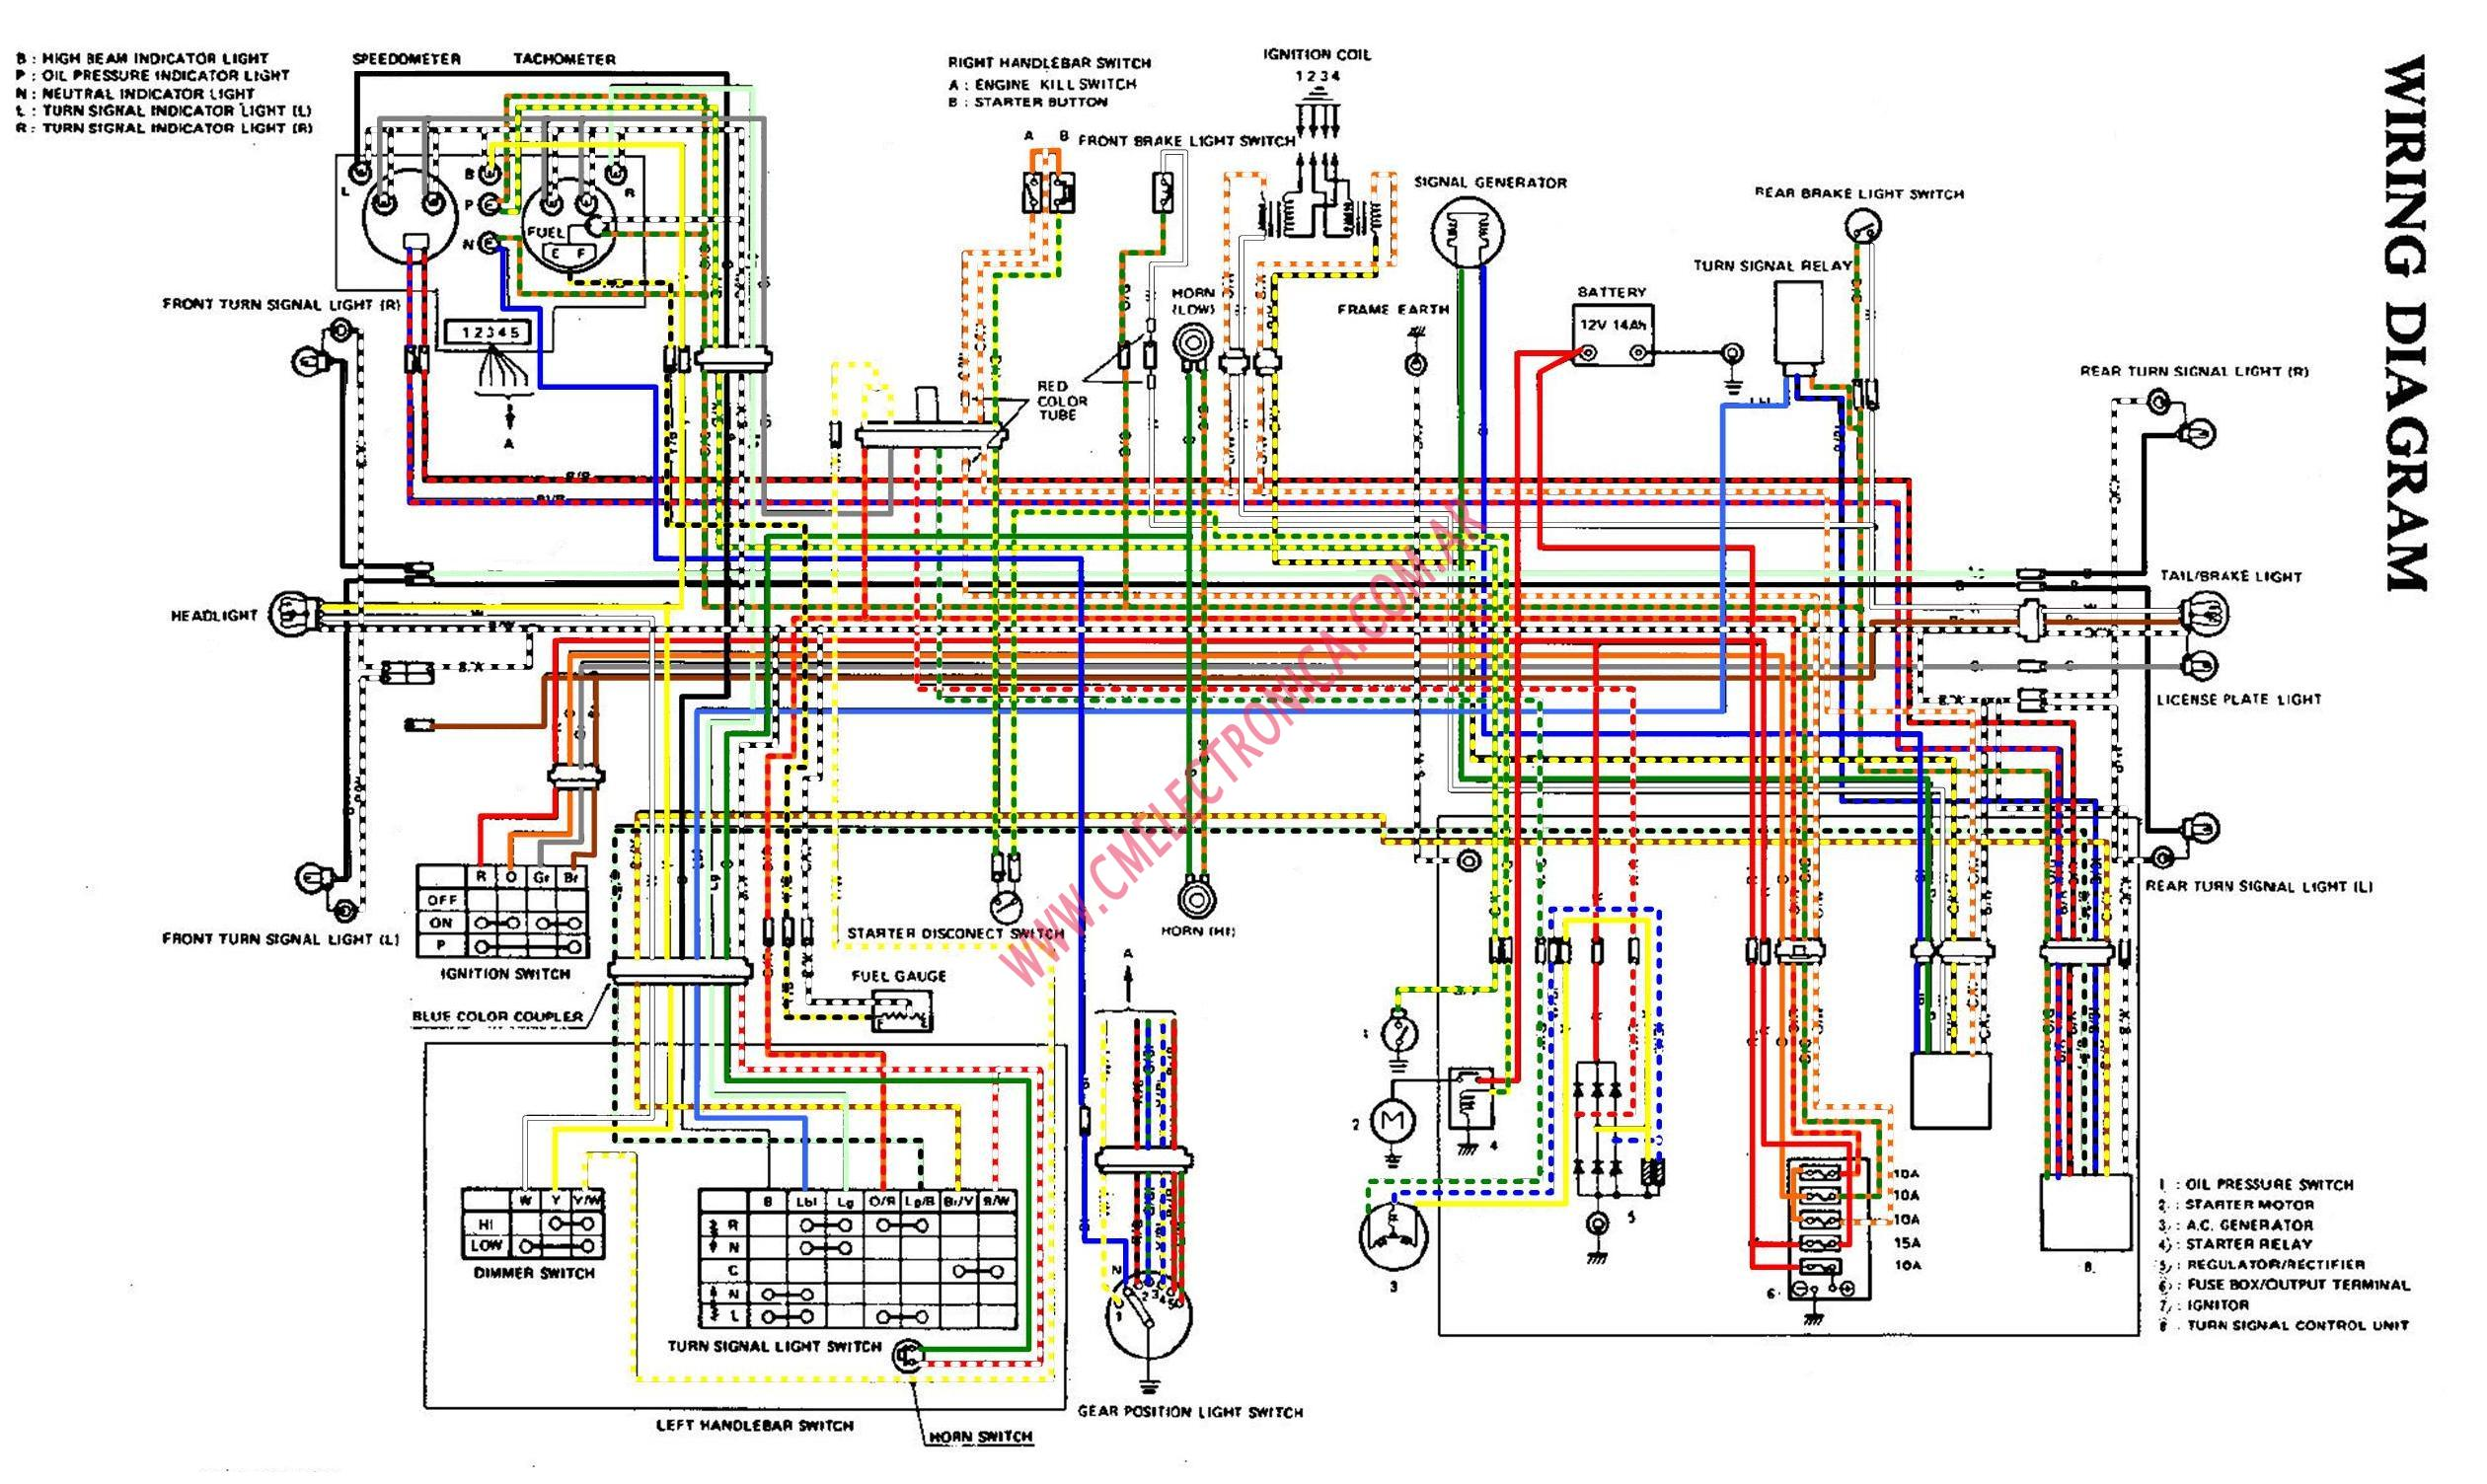 Gs750 Wiring Diagram Schematics Hyundai H100 Gs 750 Electrical Books Of